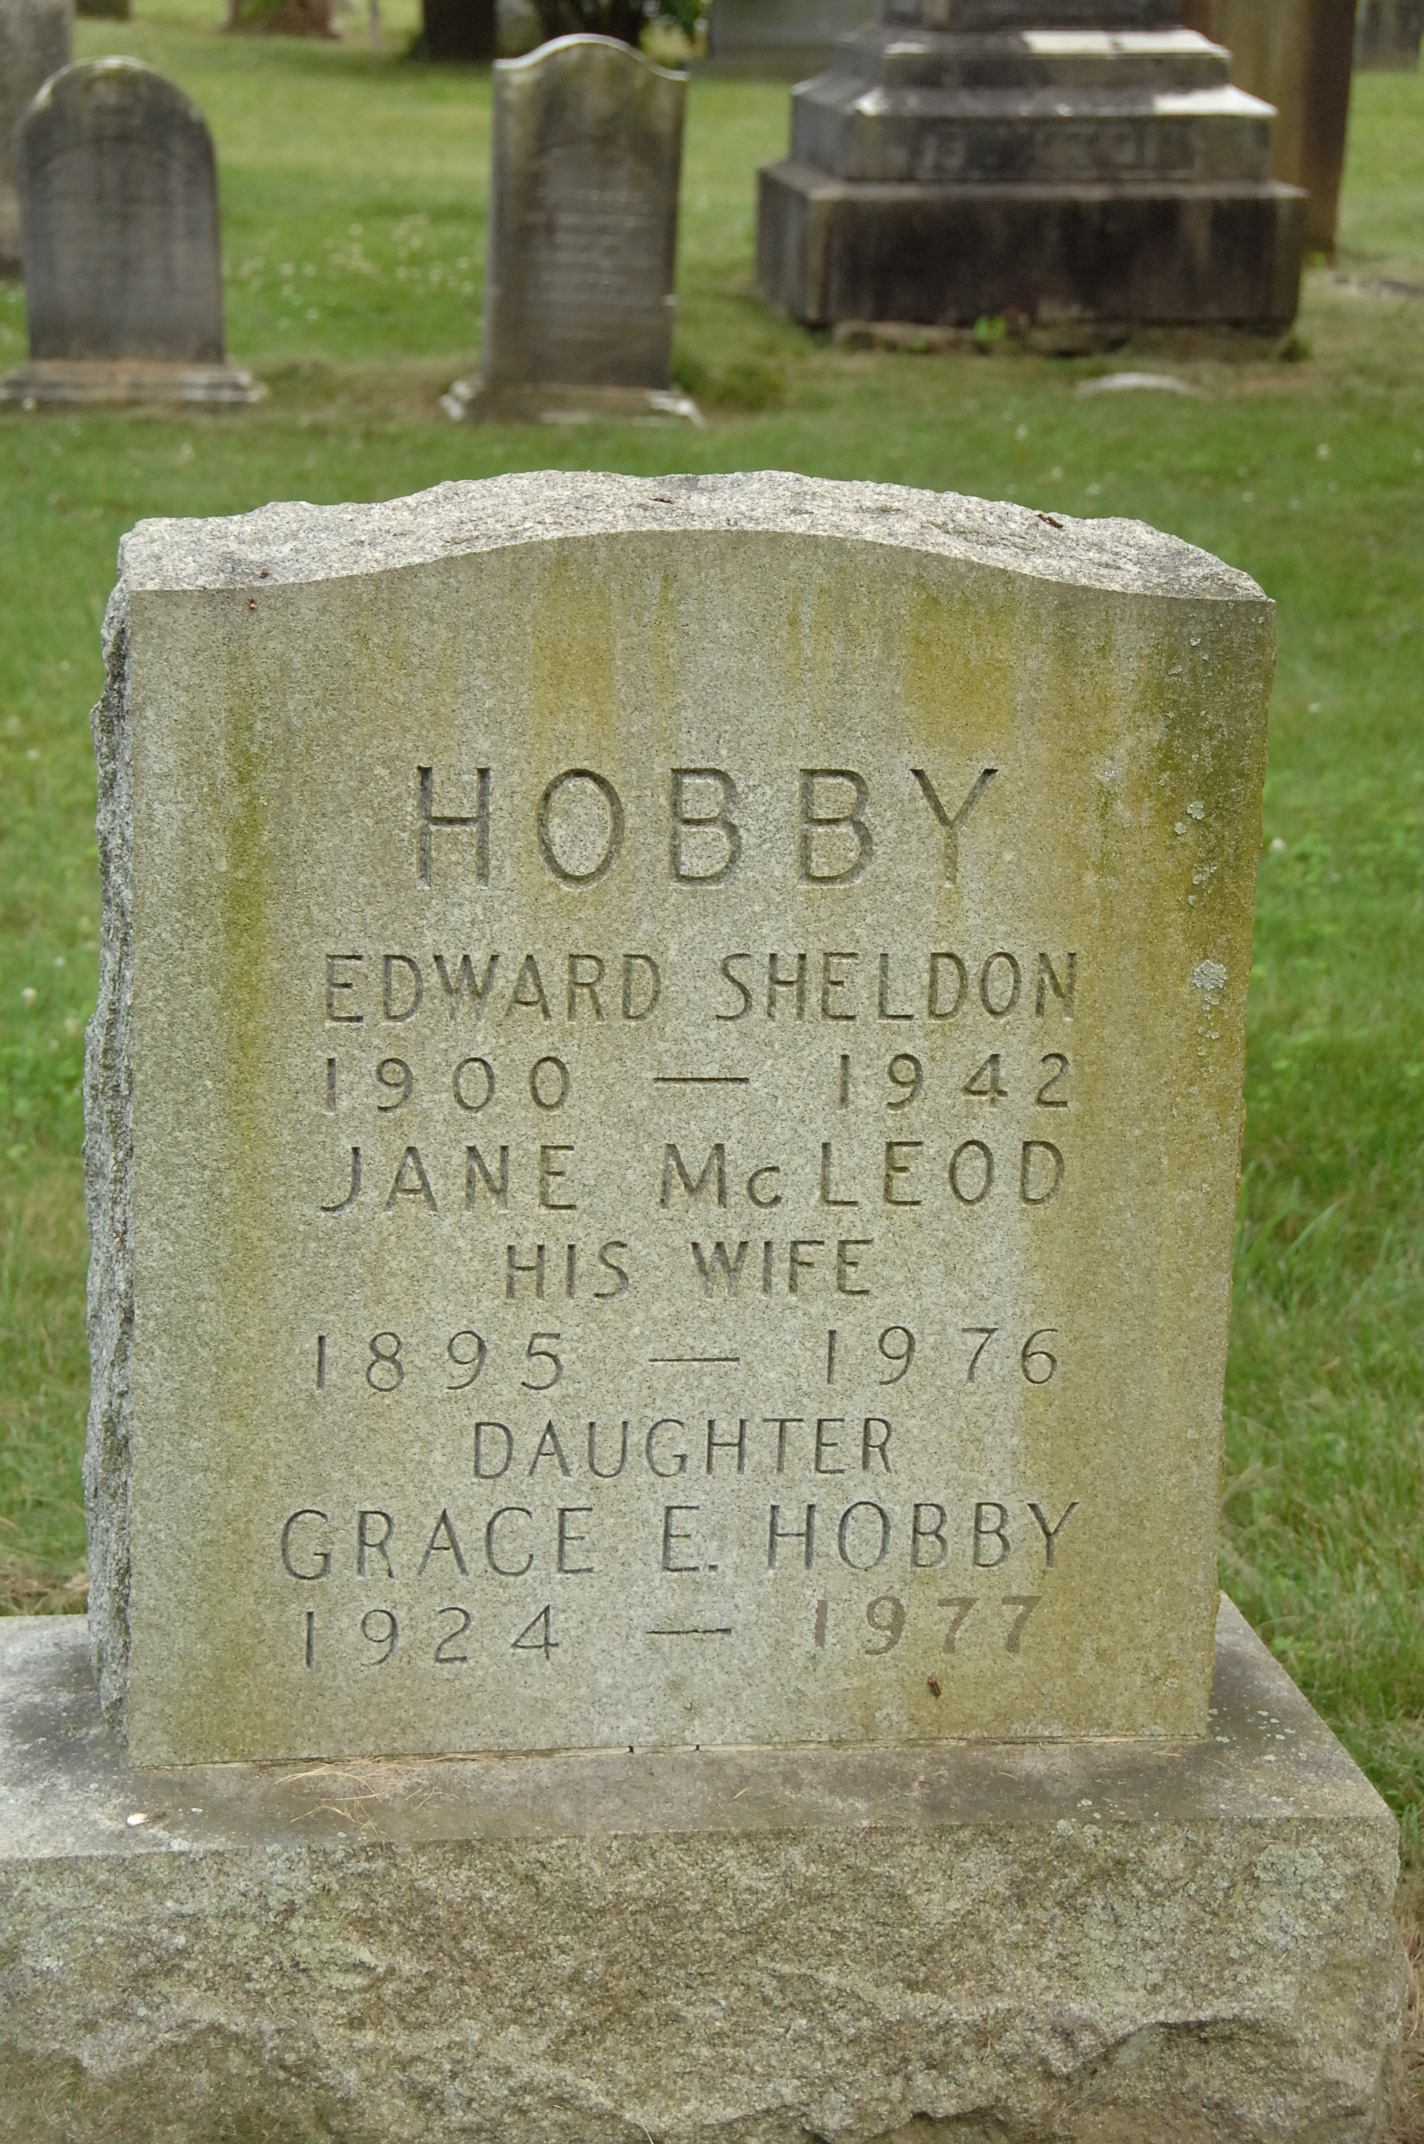 Edward Sheldon Hobby